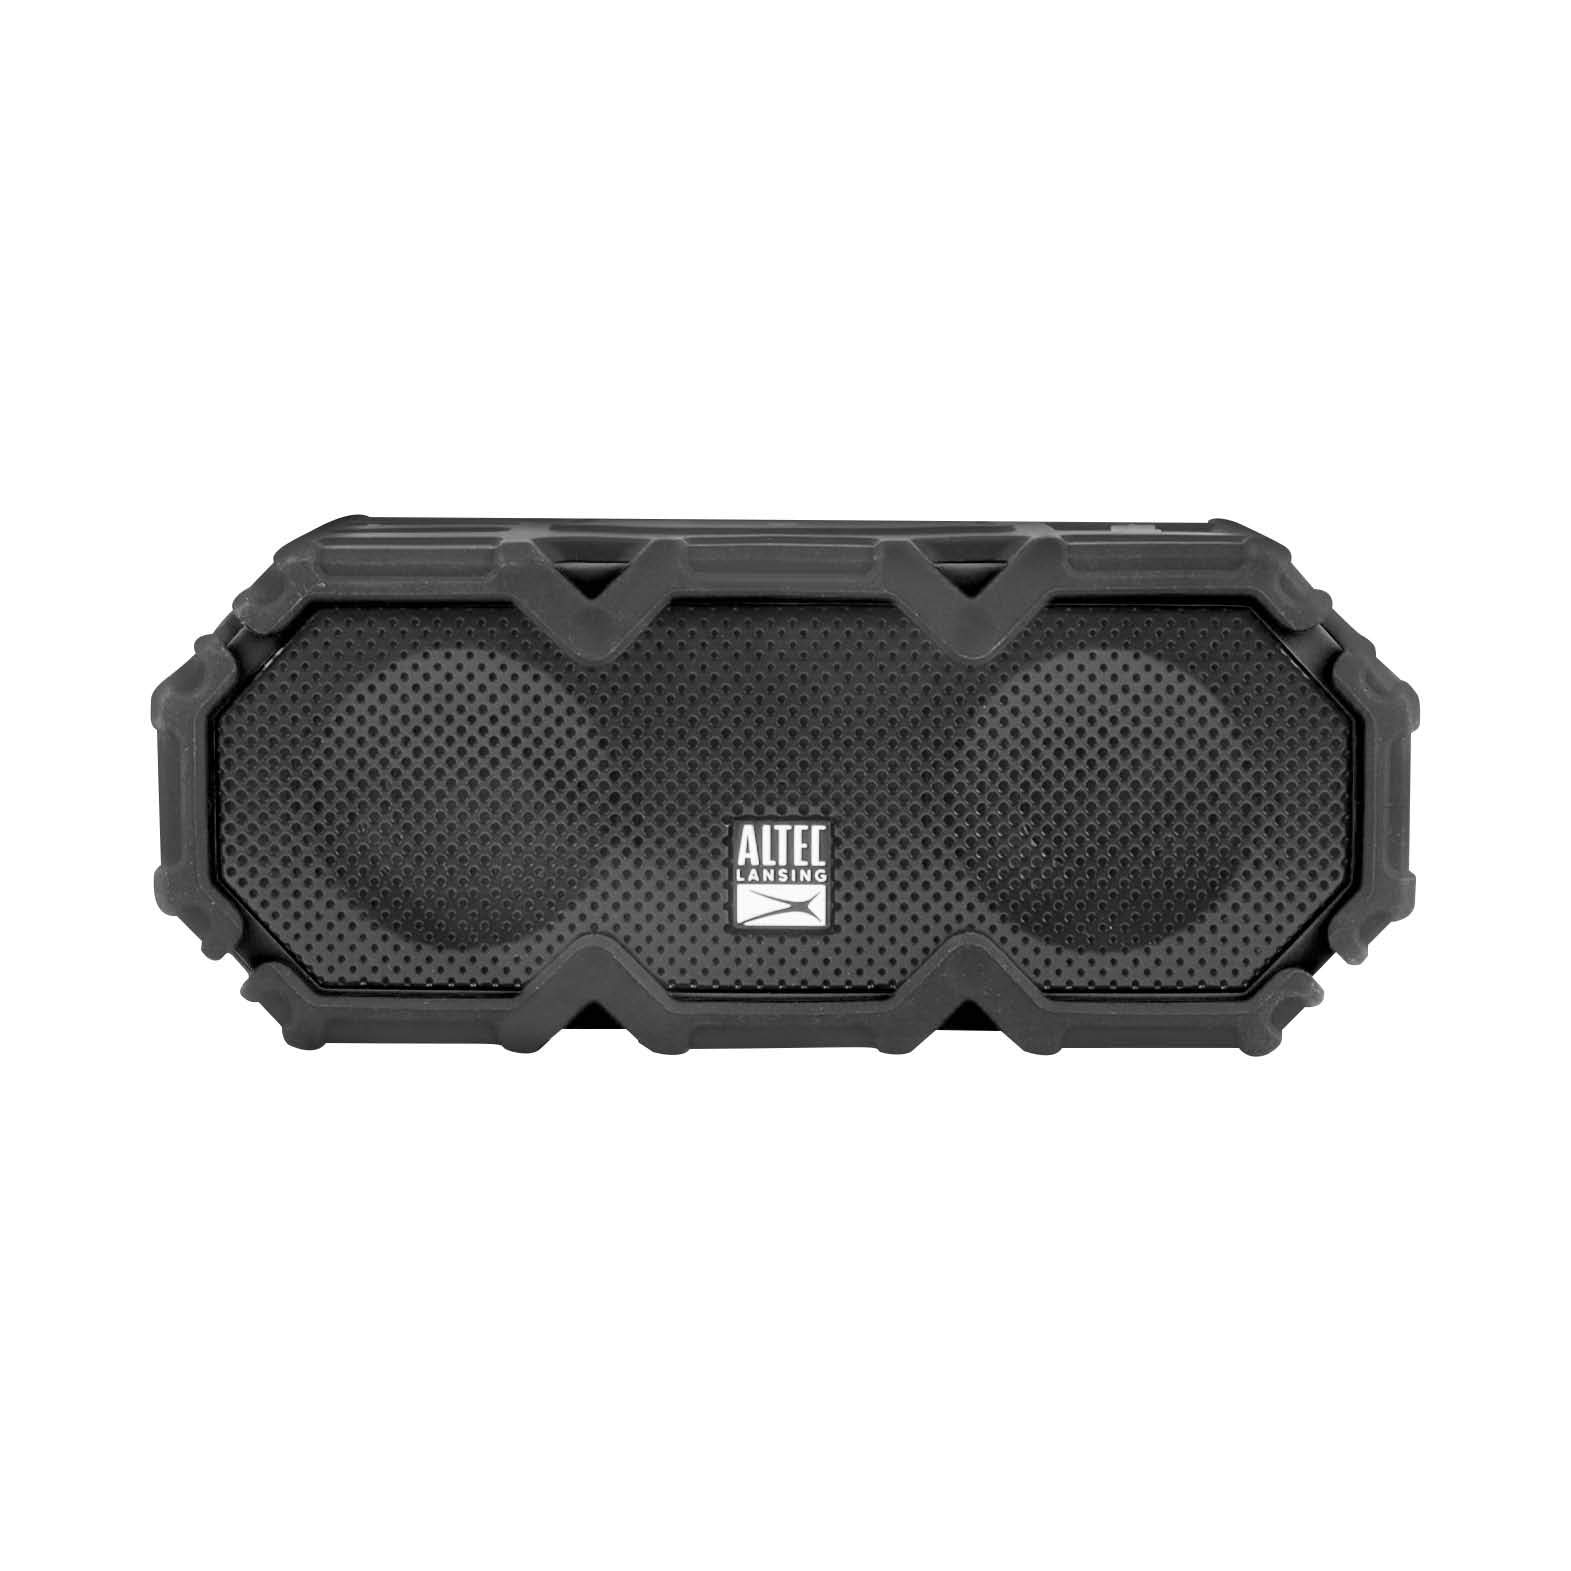 Altec Lansing IMW580 Lifejacket Jolt Heavy Duty Rugged and Waterproof Portable Bluetooth Speaker with Qi Wireless Charging, 20 Hours of Battery Life, 100FT Wireless Range and Voice Assistant by Altec Lansing